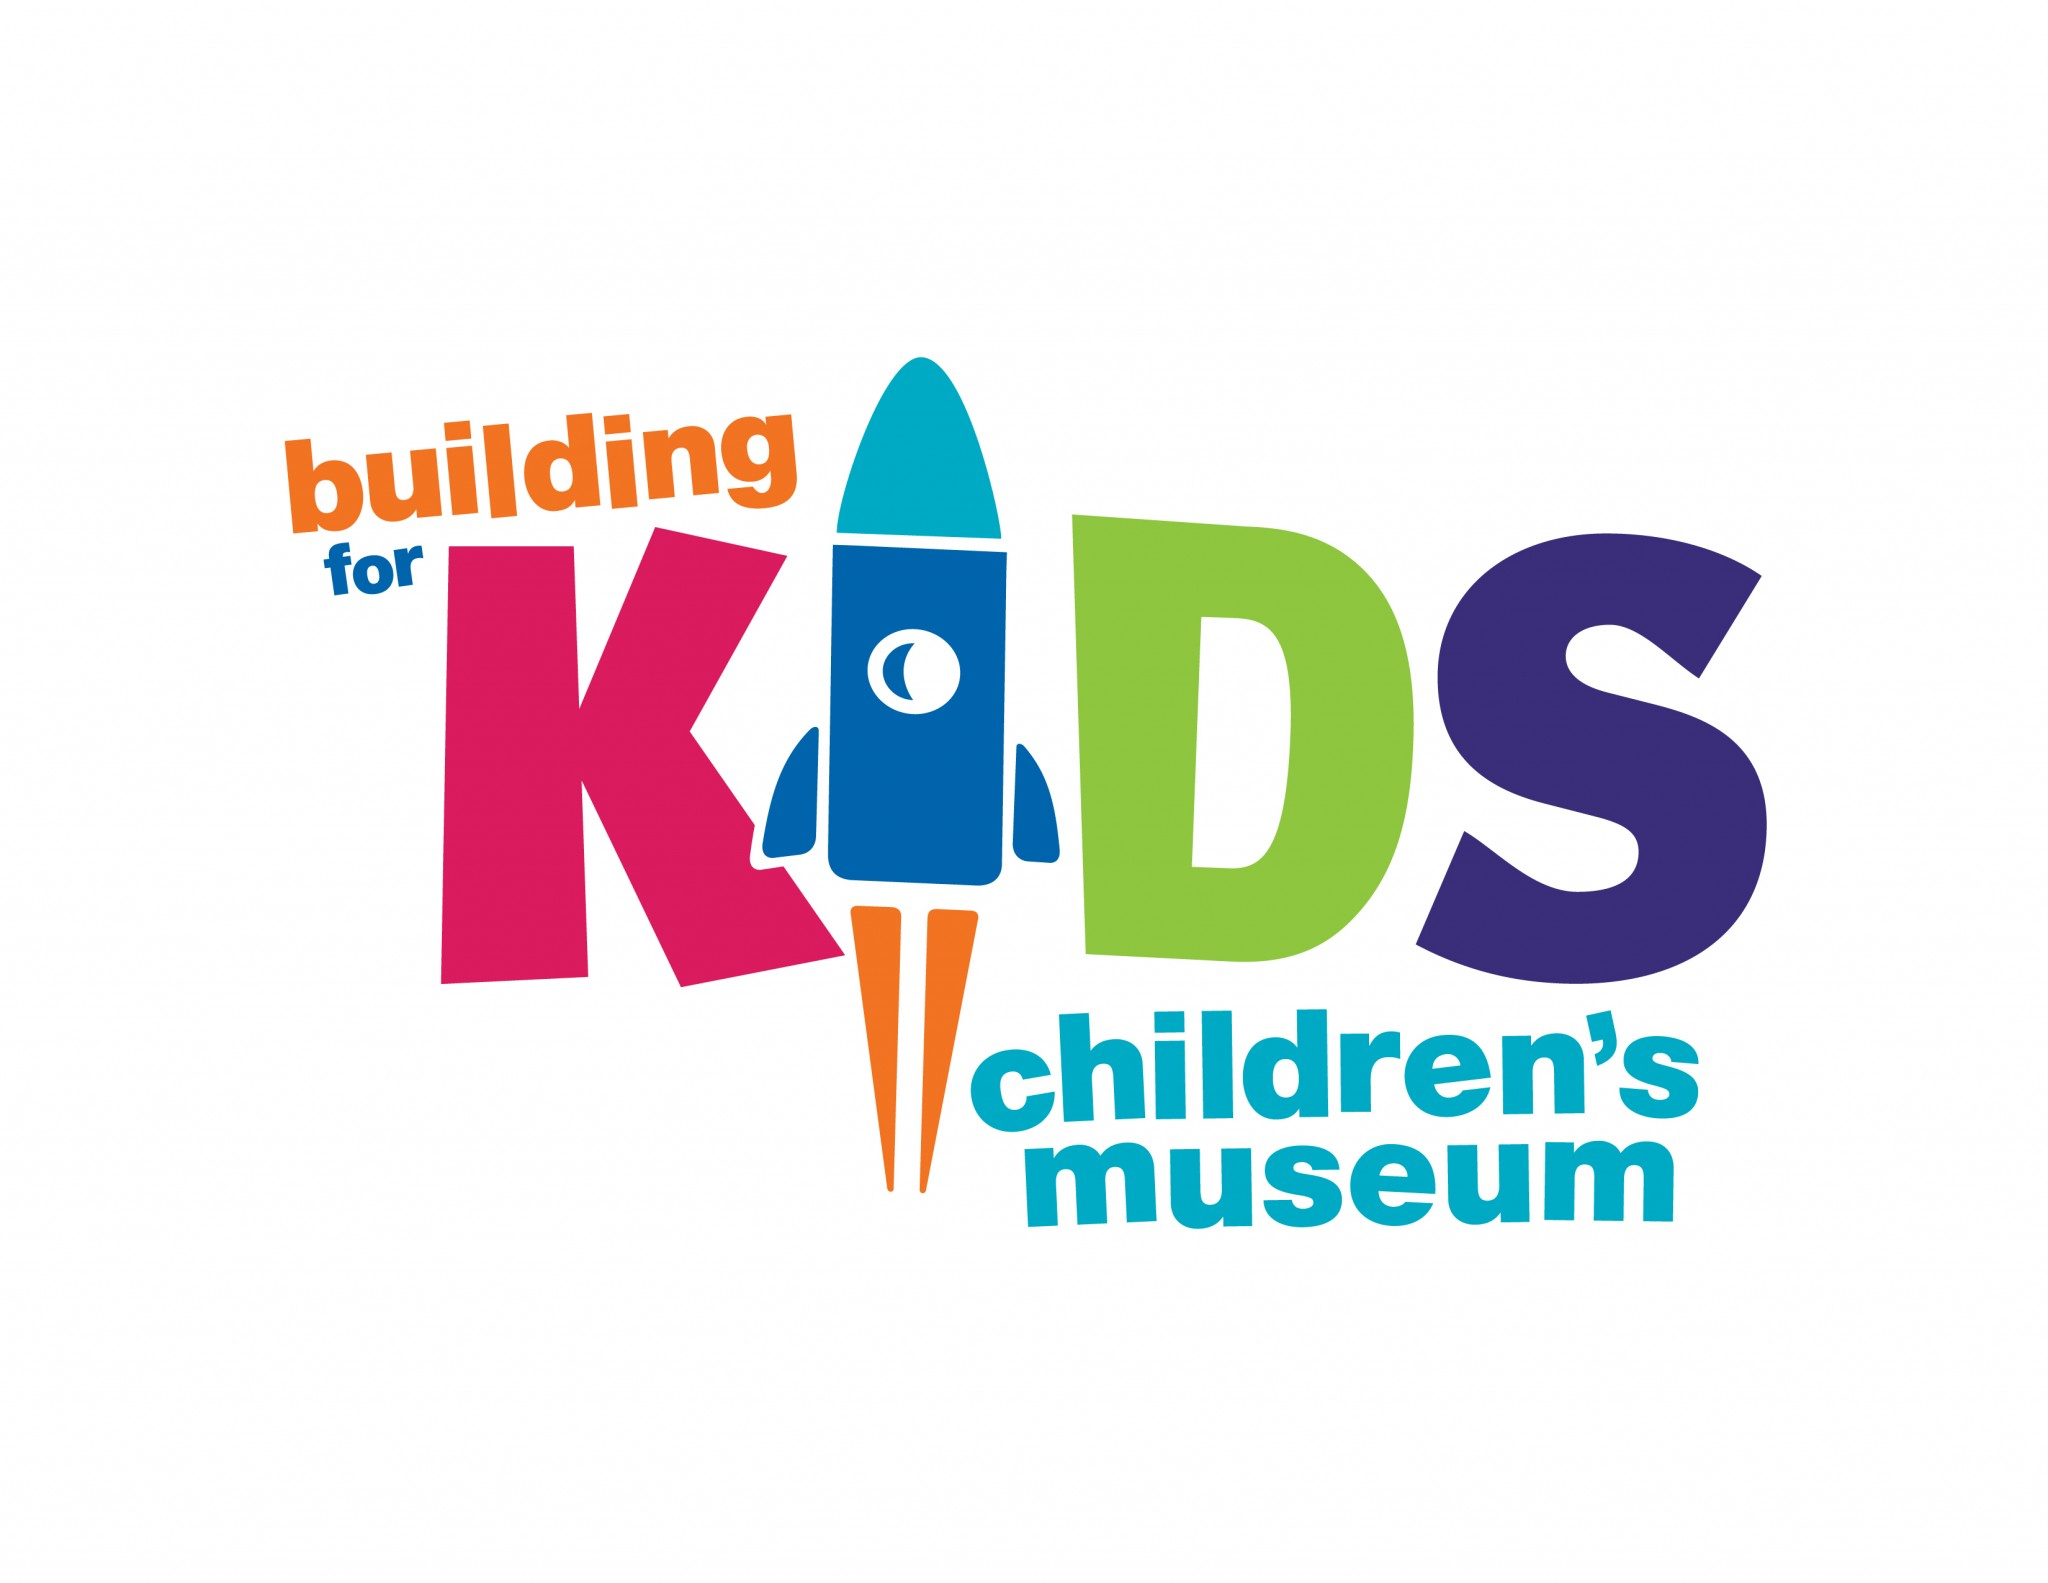 Building for Kids: Response to COVID-19